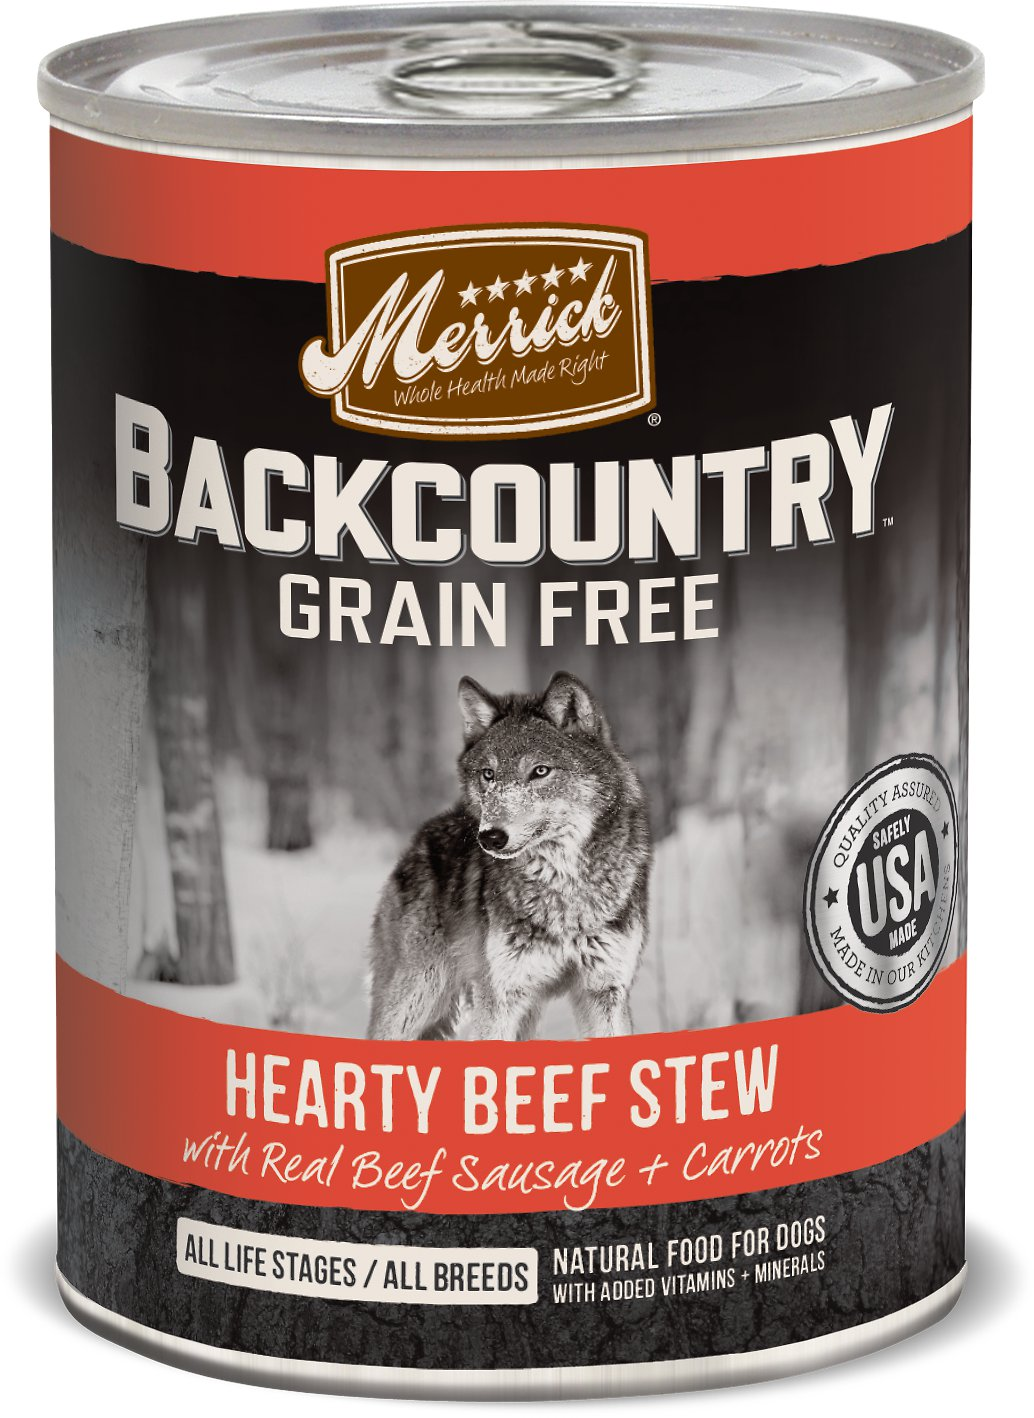 Merrick Backcountry Beef Stew Canned Dog Food 12.7z, 12